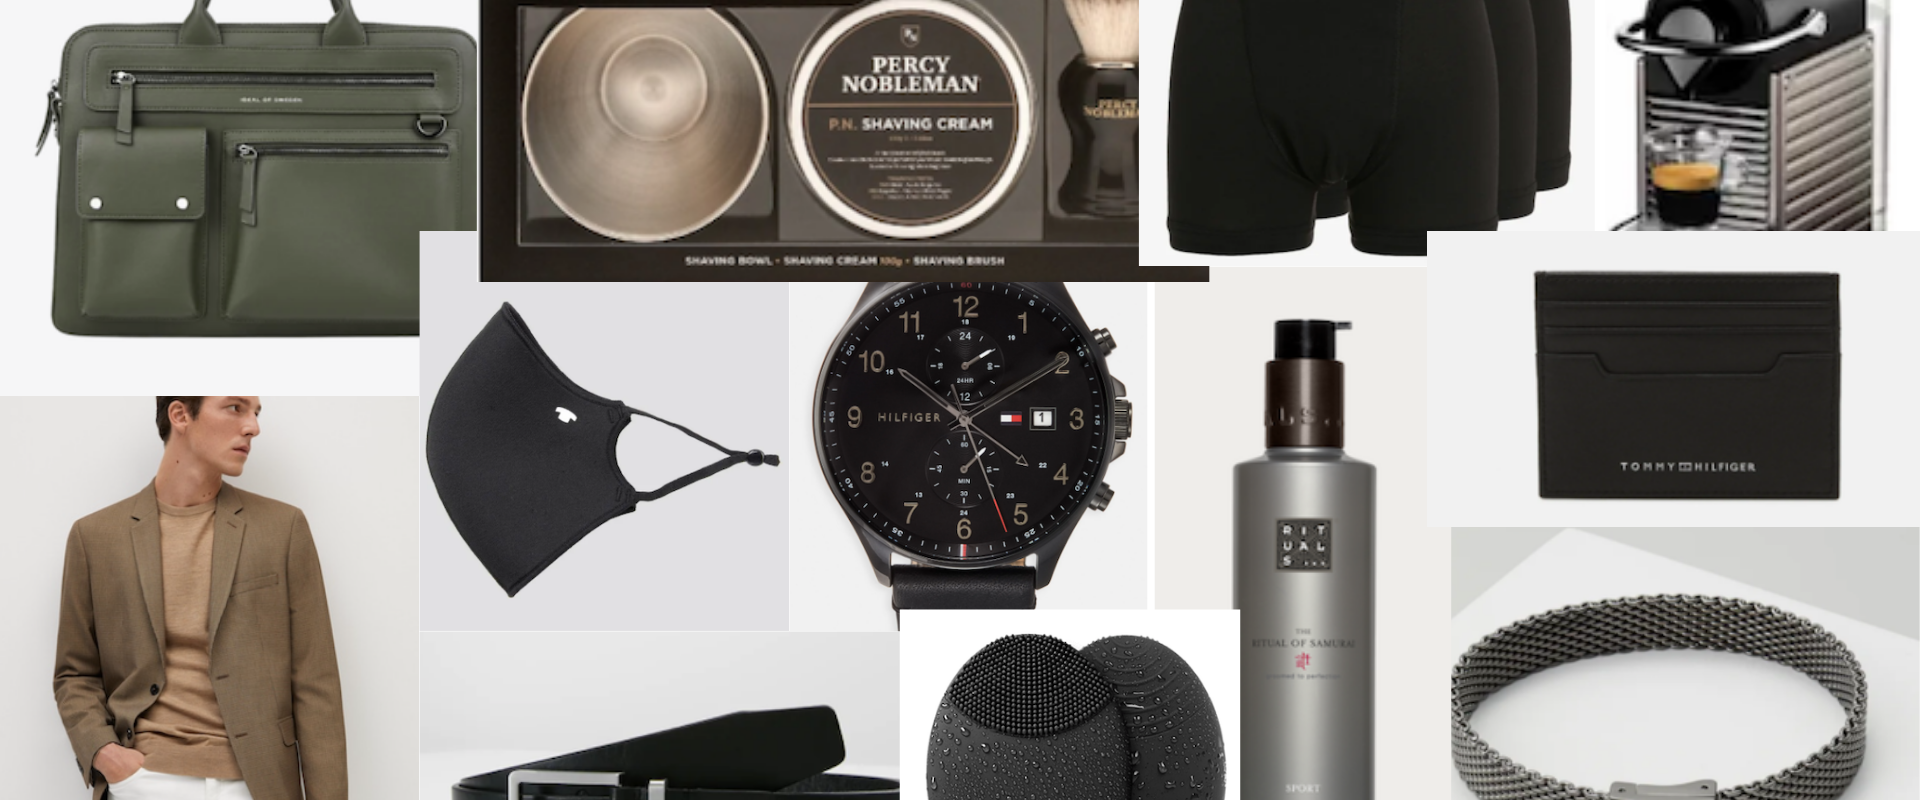 HOLIDAY GIFT GUIDE - FOR HIM